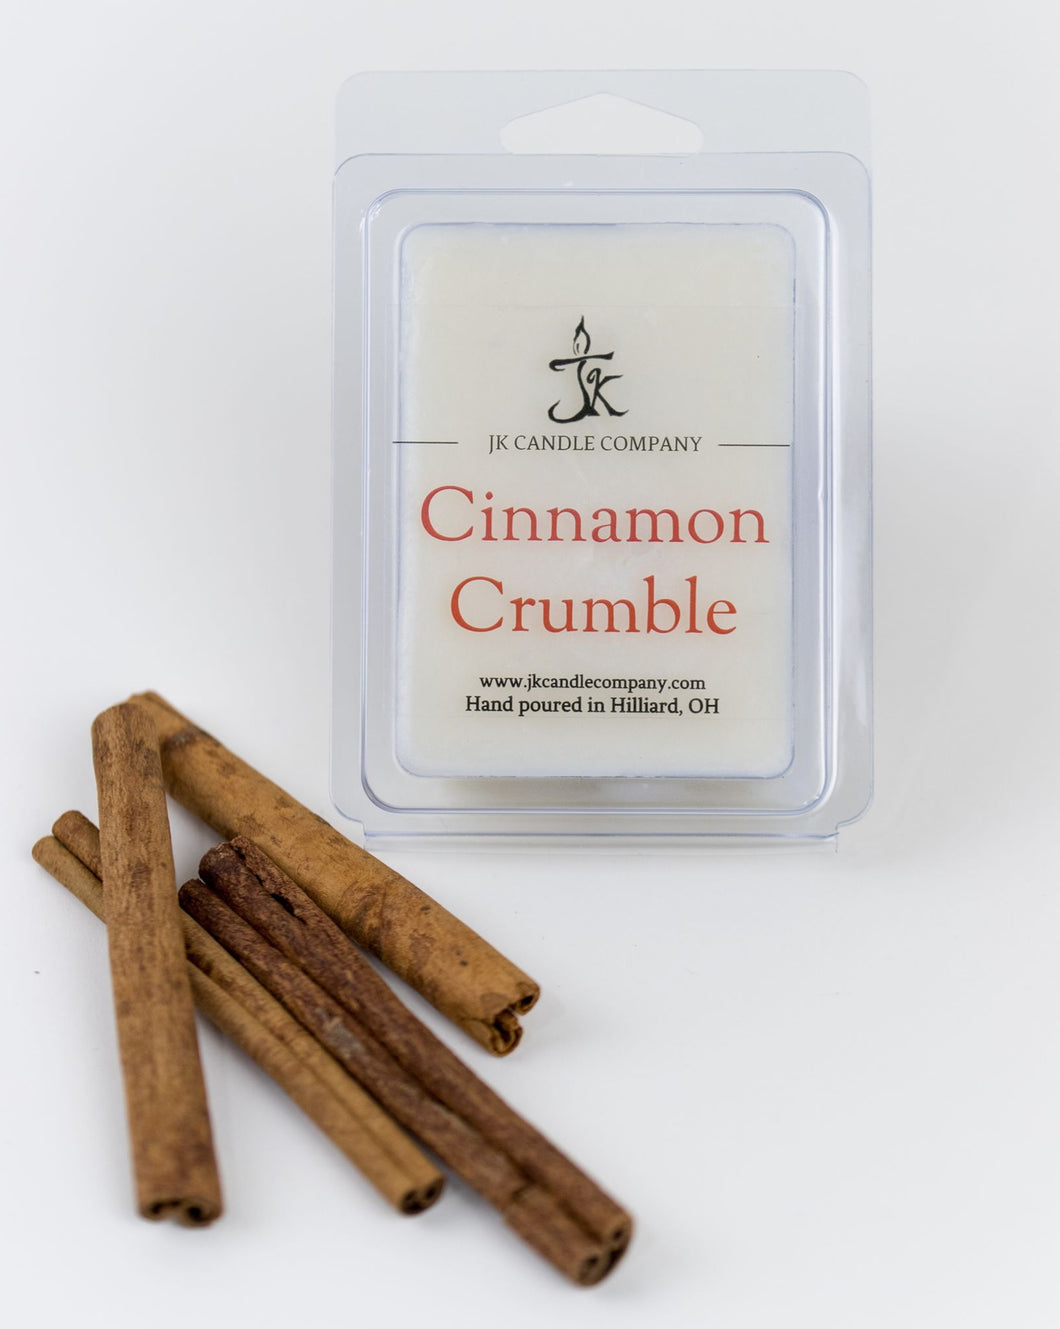 Cinnamon Crumble Wax Melts